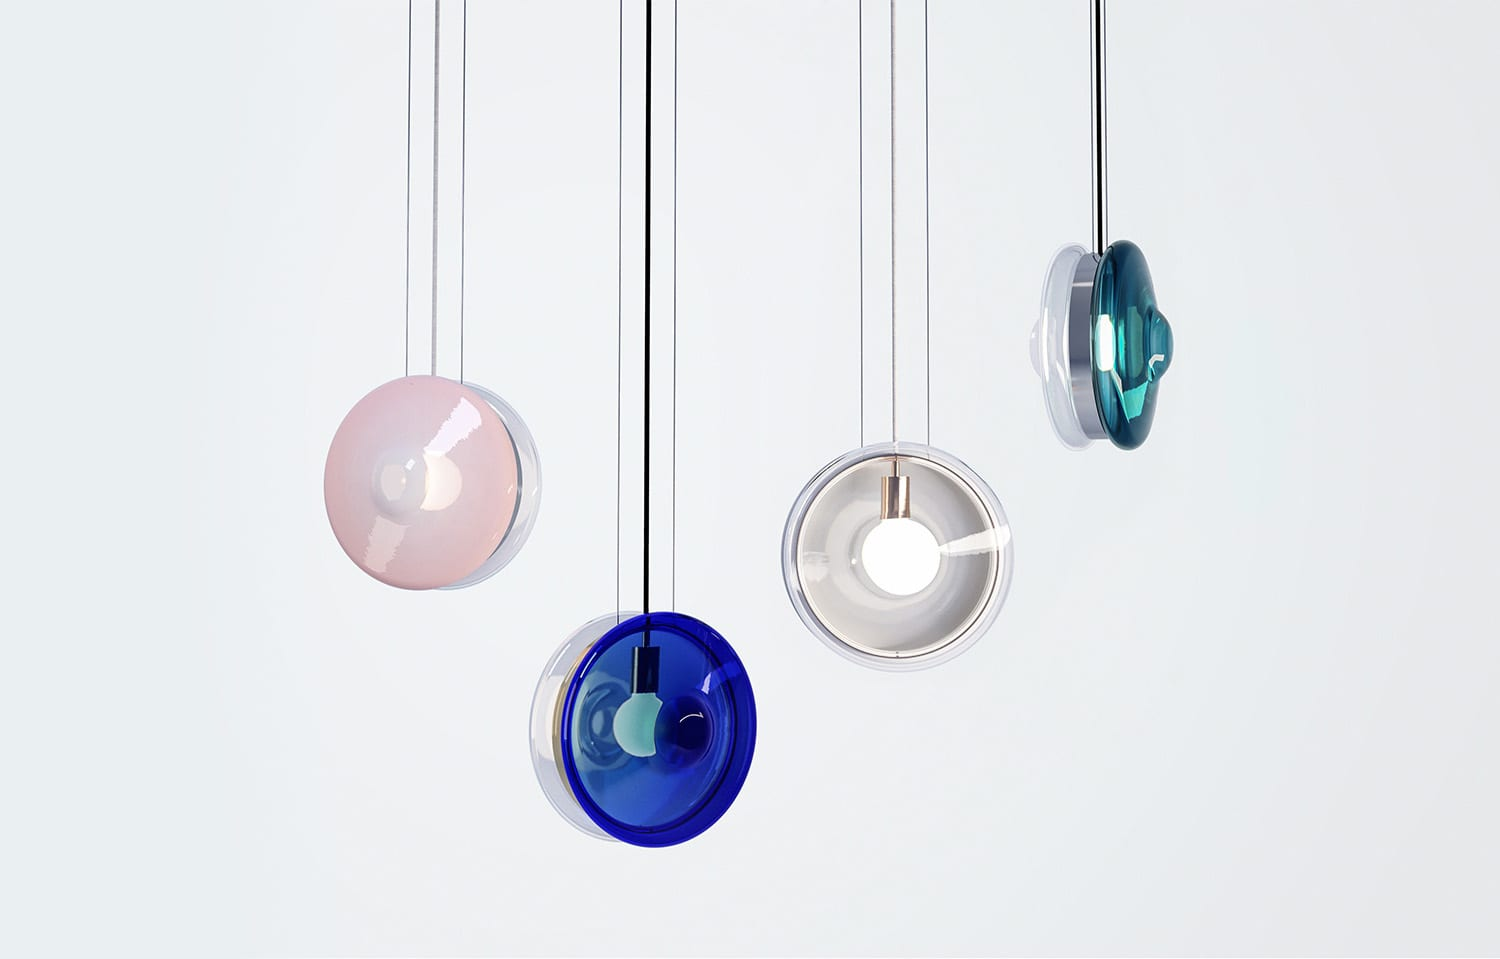 Orbital Collection by Studio deForm for Bomma at Maison & Objet 2018 | Yellowtrace